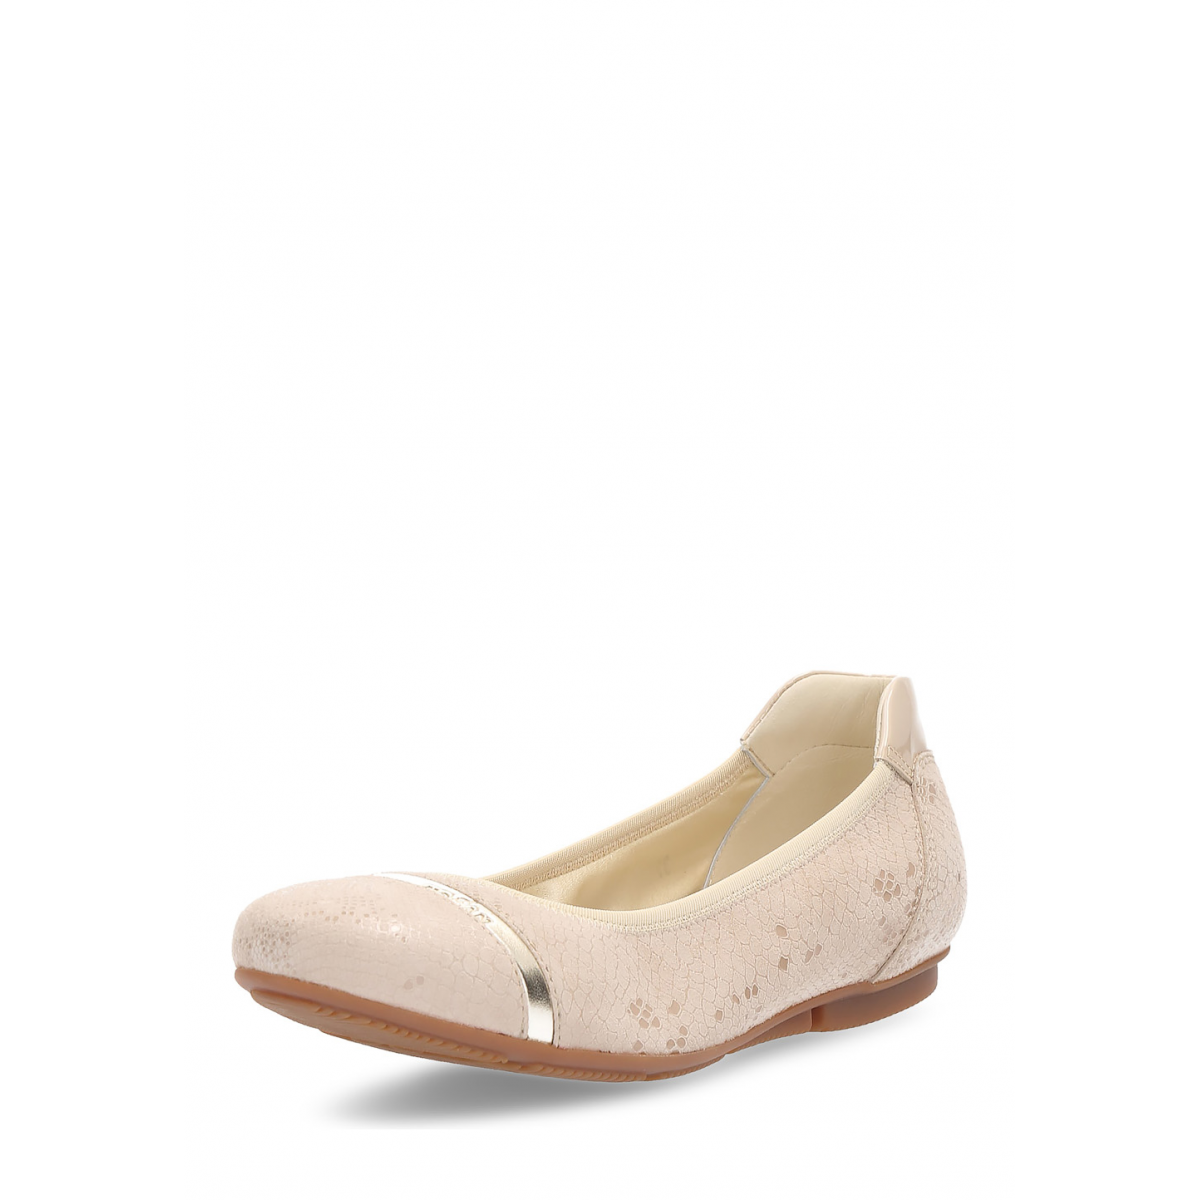 Primary image for Hogan Womens Ballerina Beige HXW1440712488DHM024